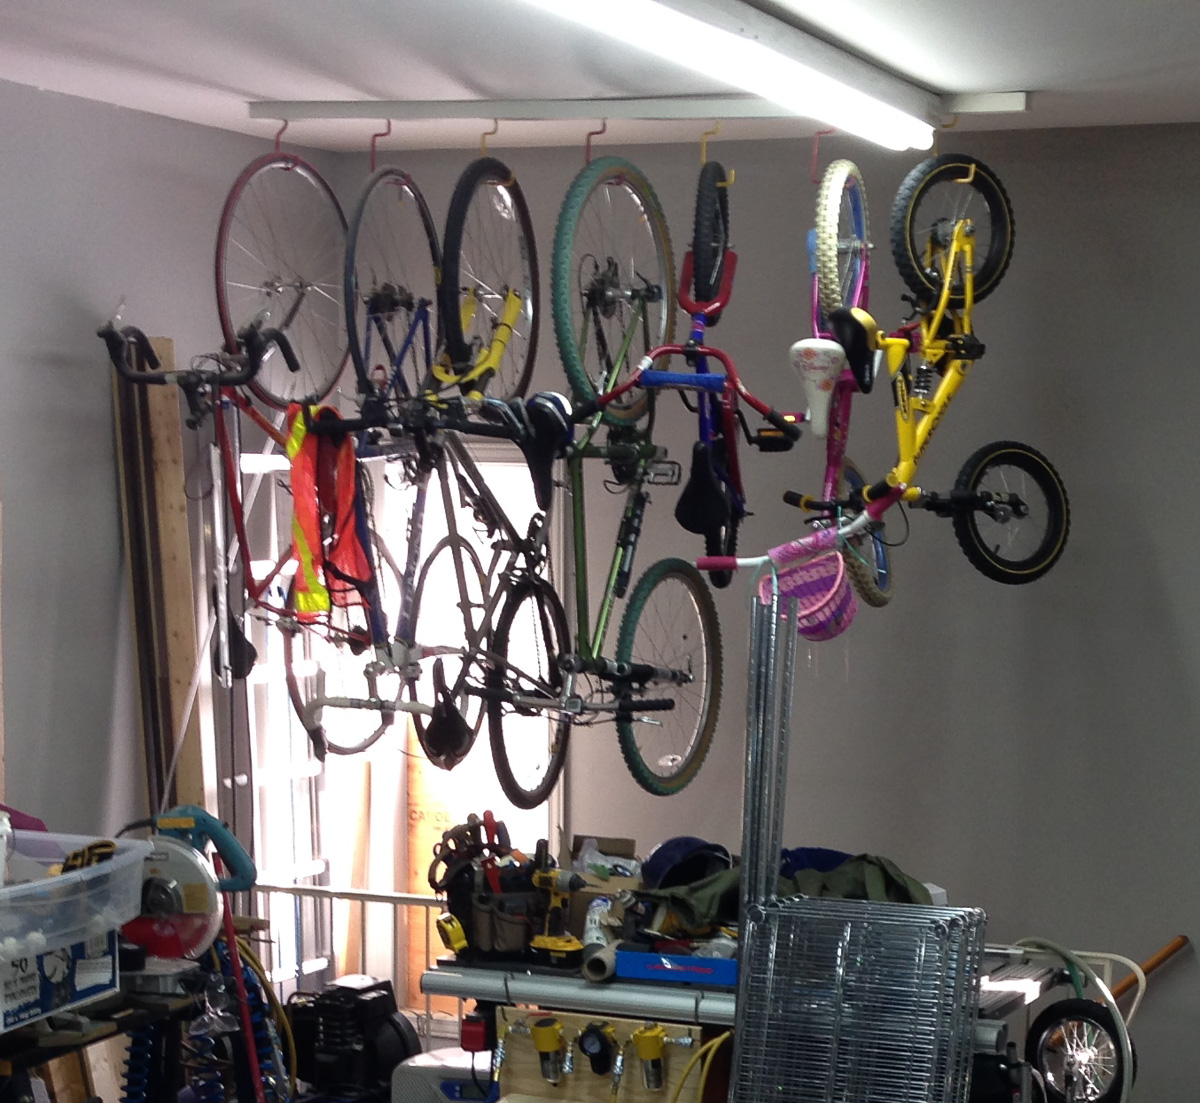 The Fix-it Blog - Sorting Things Out: Delta Vertical Wall ...